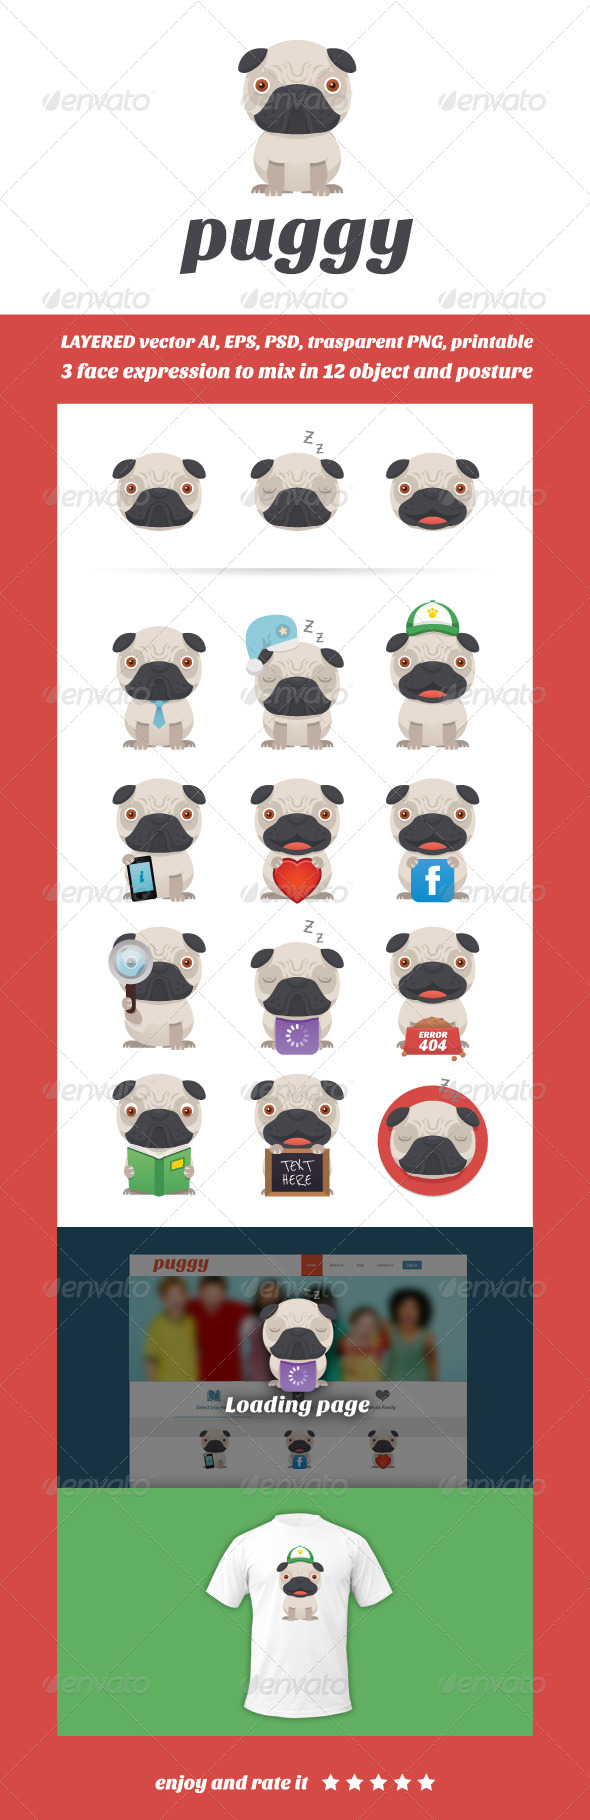 Puggy Mascot - Animals Characters